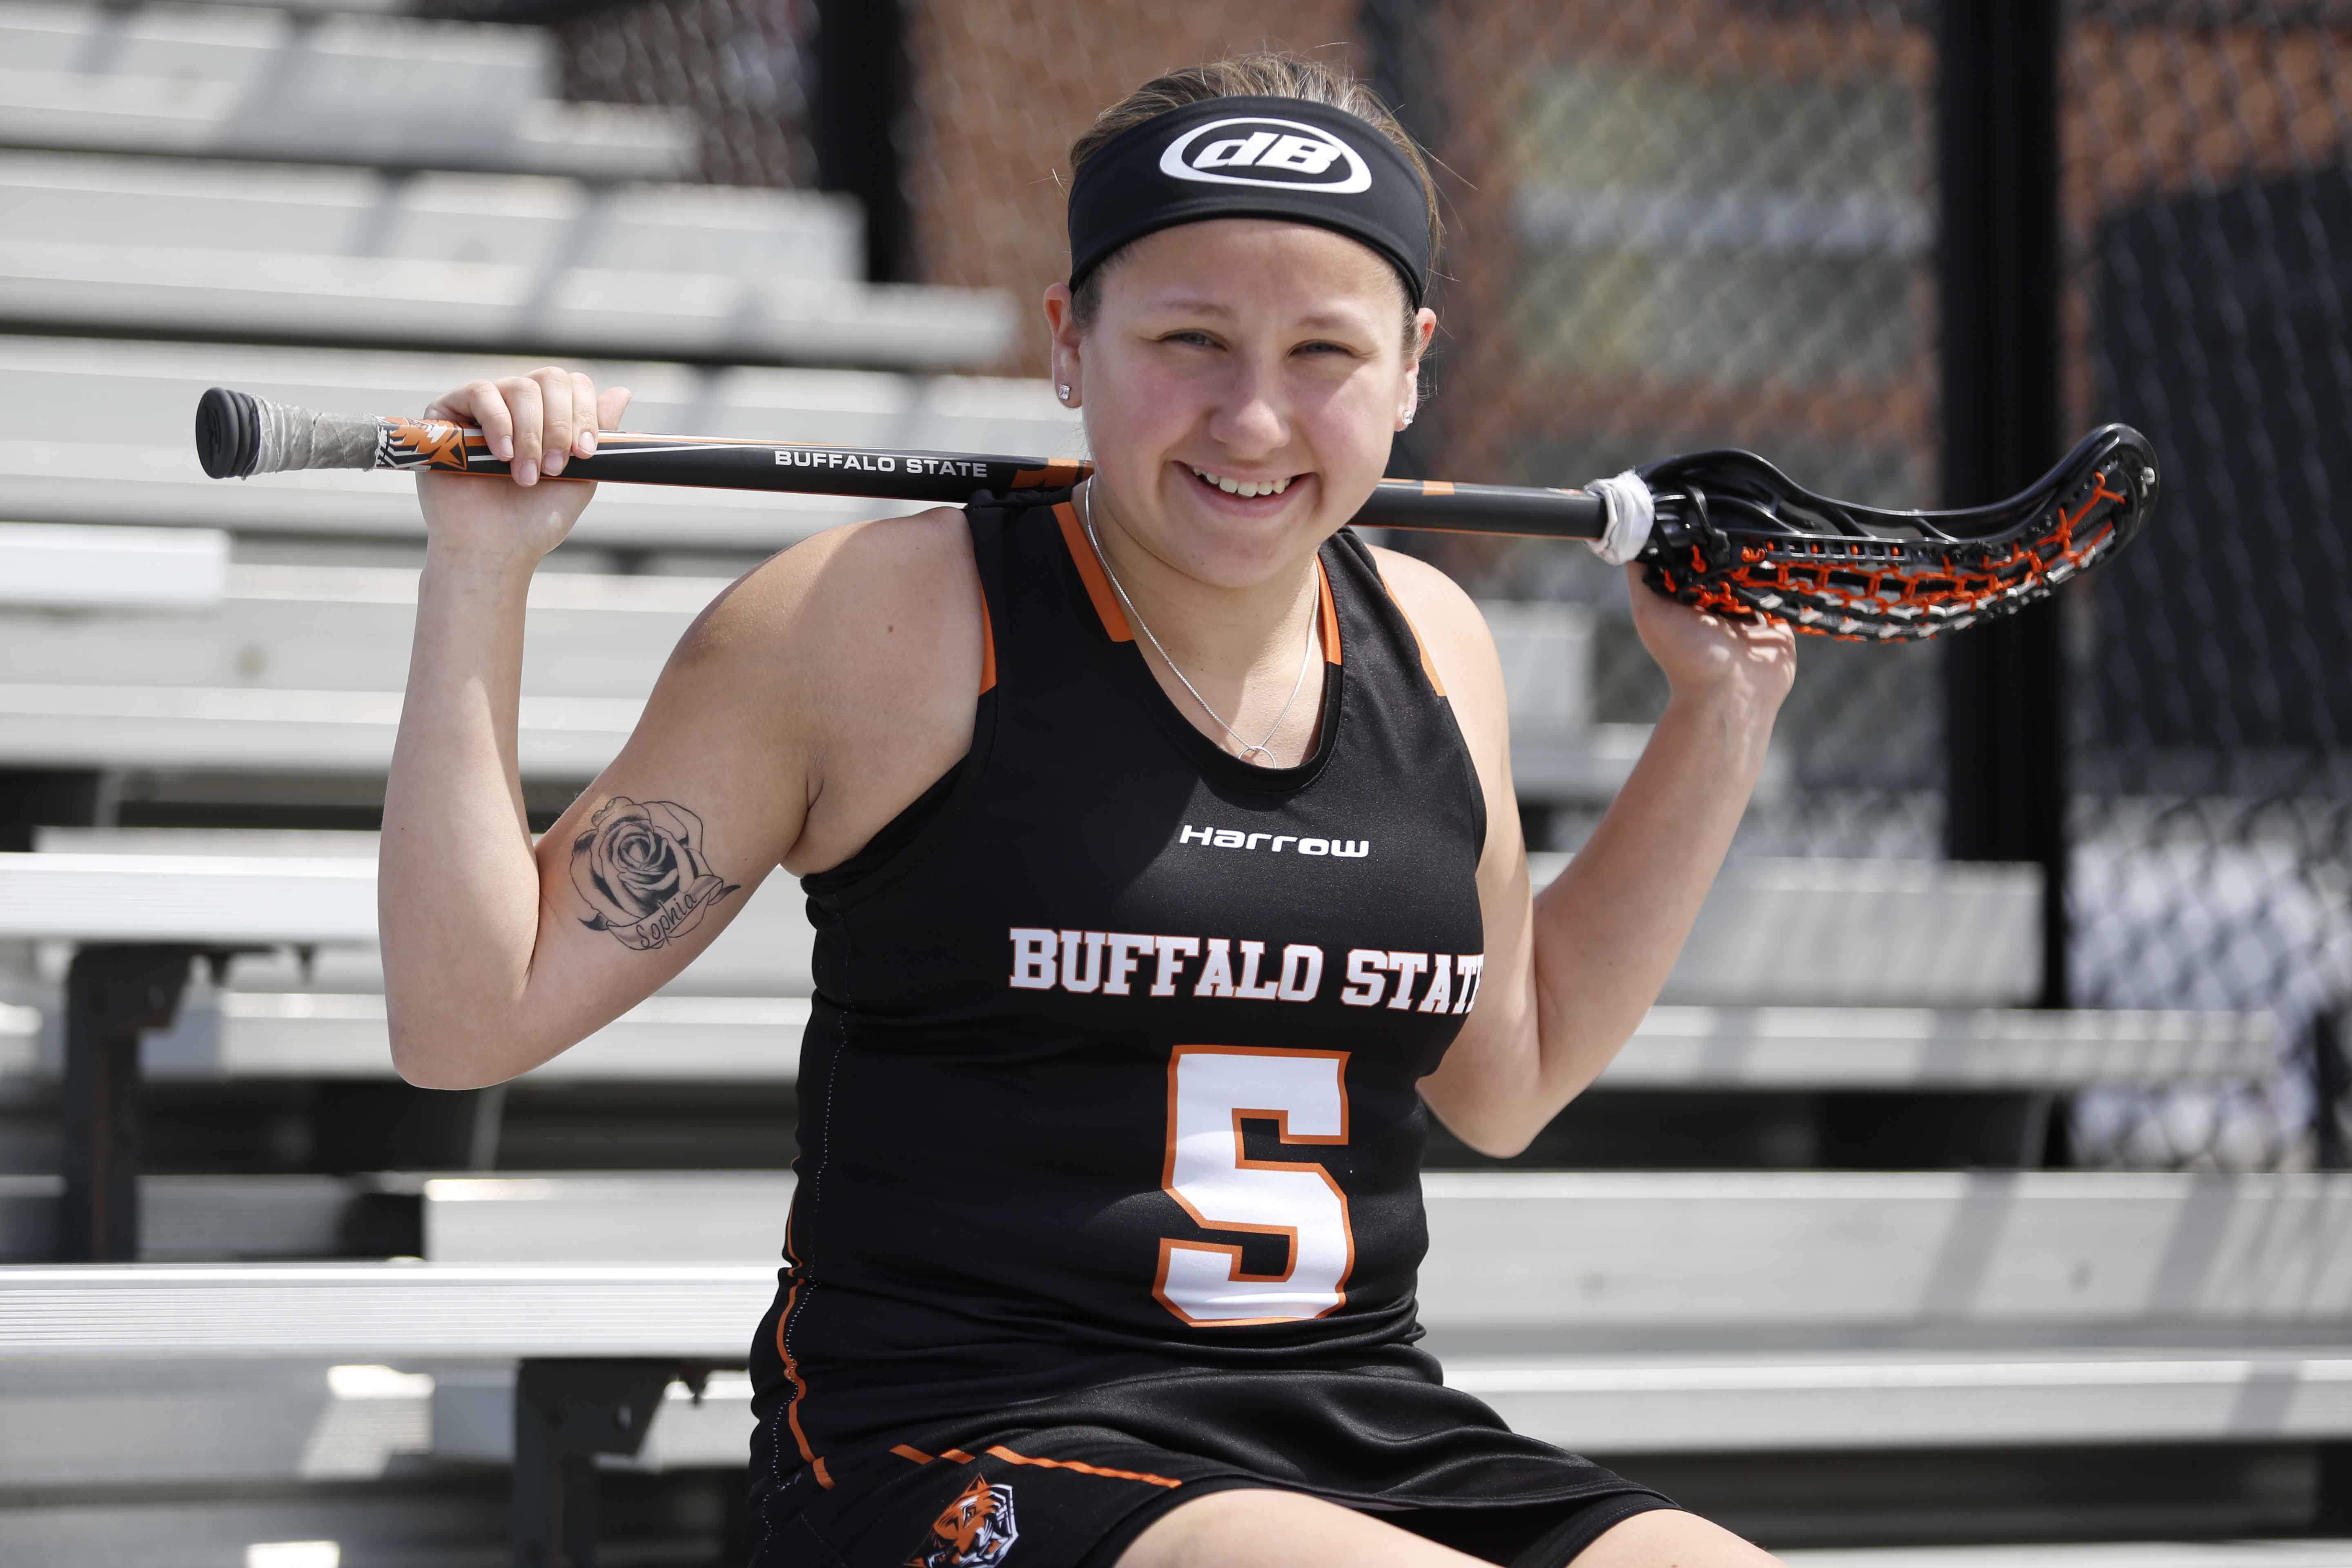 Freshman attacker Alanna Herne led the Bengals in points (73) and goals (42), on way to being named second team All-SUNYAC.